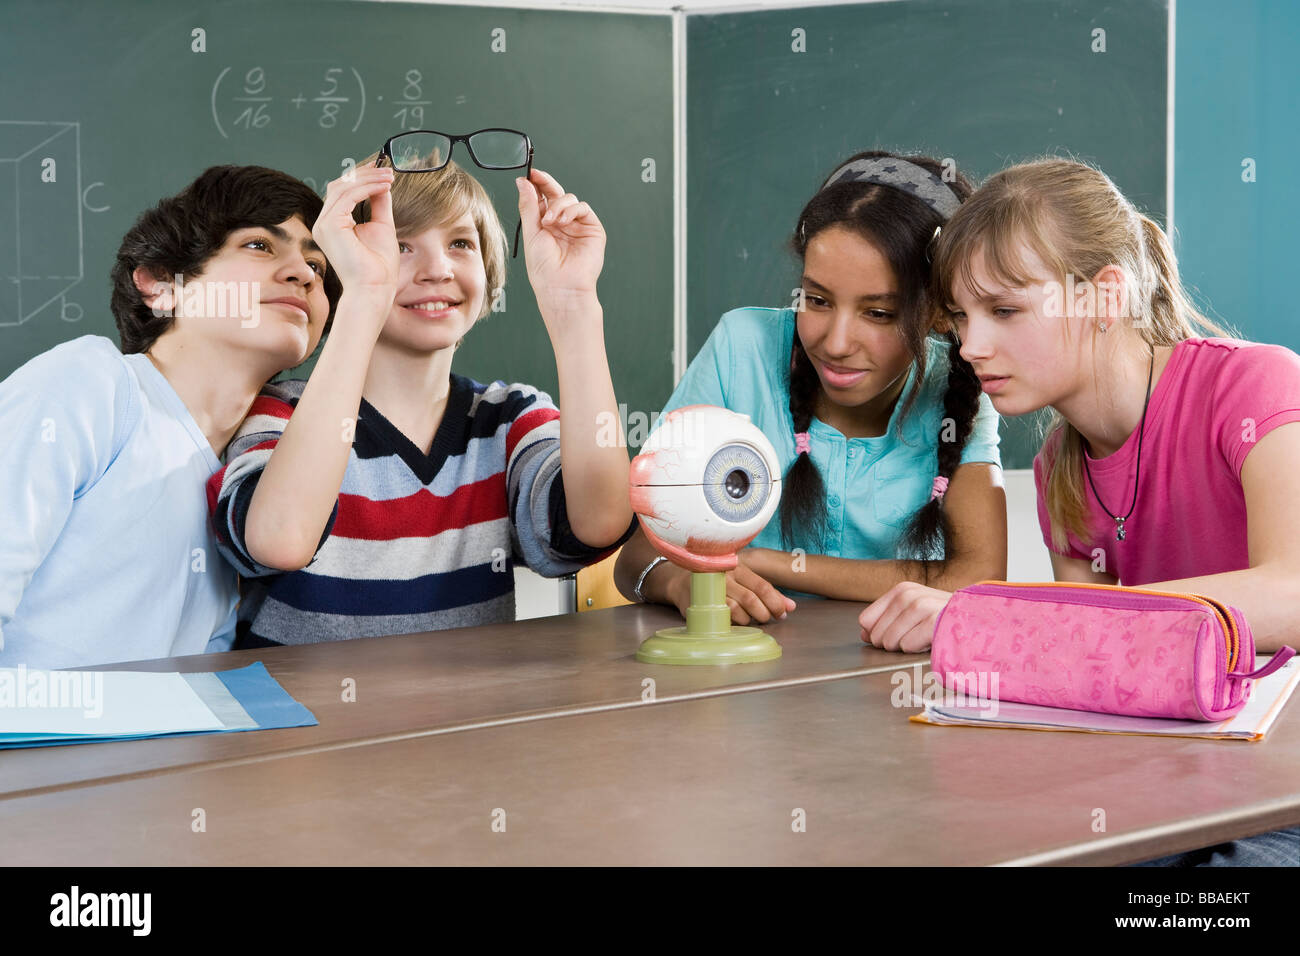 School students sitting together in a classroom - Stock Image